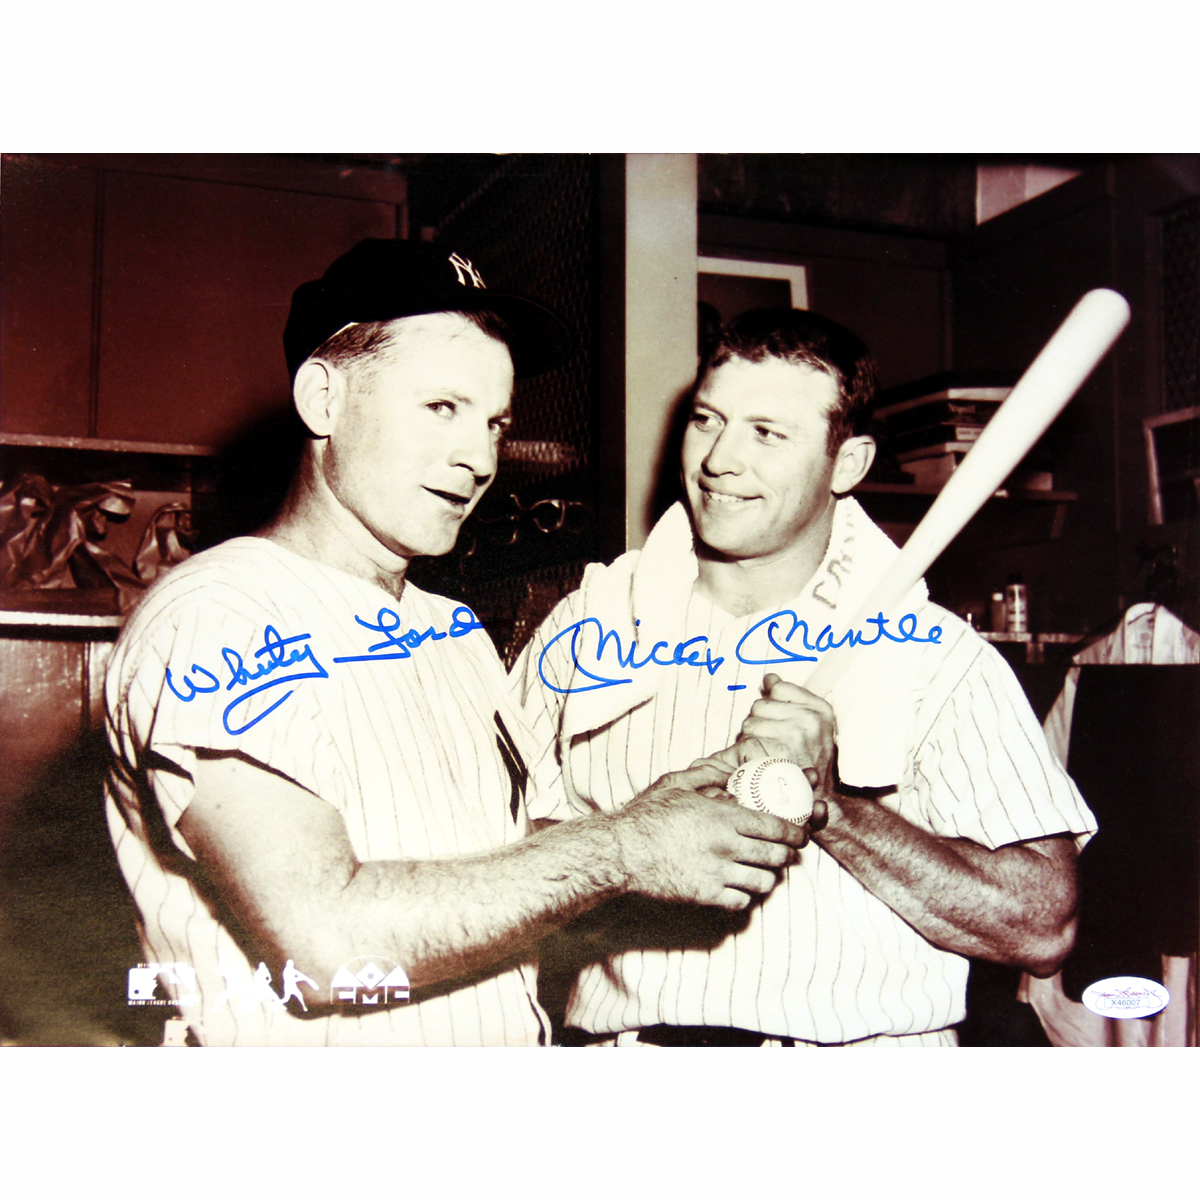 Autographed Mickey Mantle & Whitey Ford